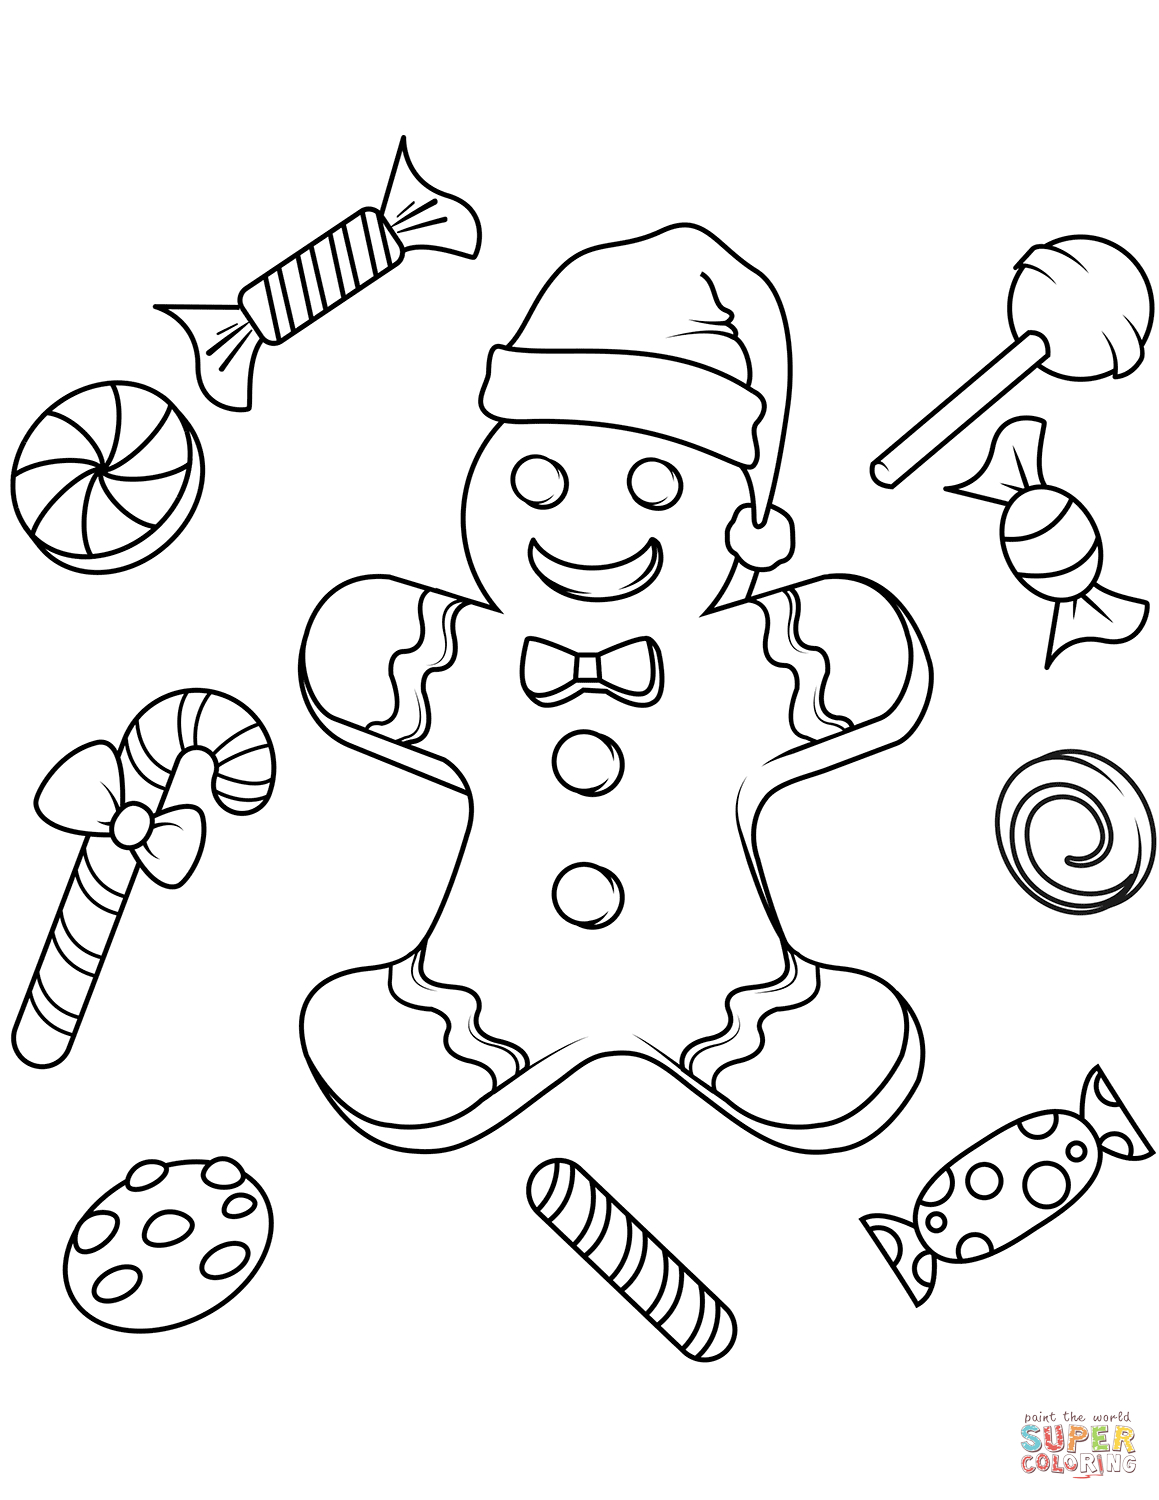 Gingerbread Coloring Pages Christmas Gingerbread Coloring Pages Free Coloring Pages